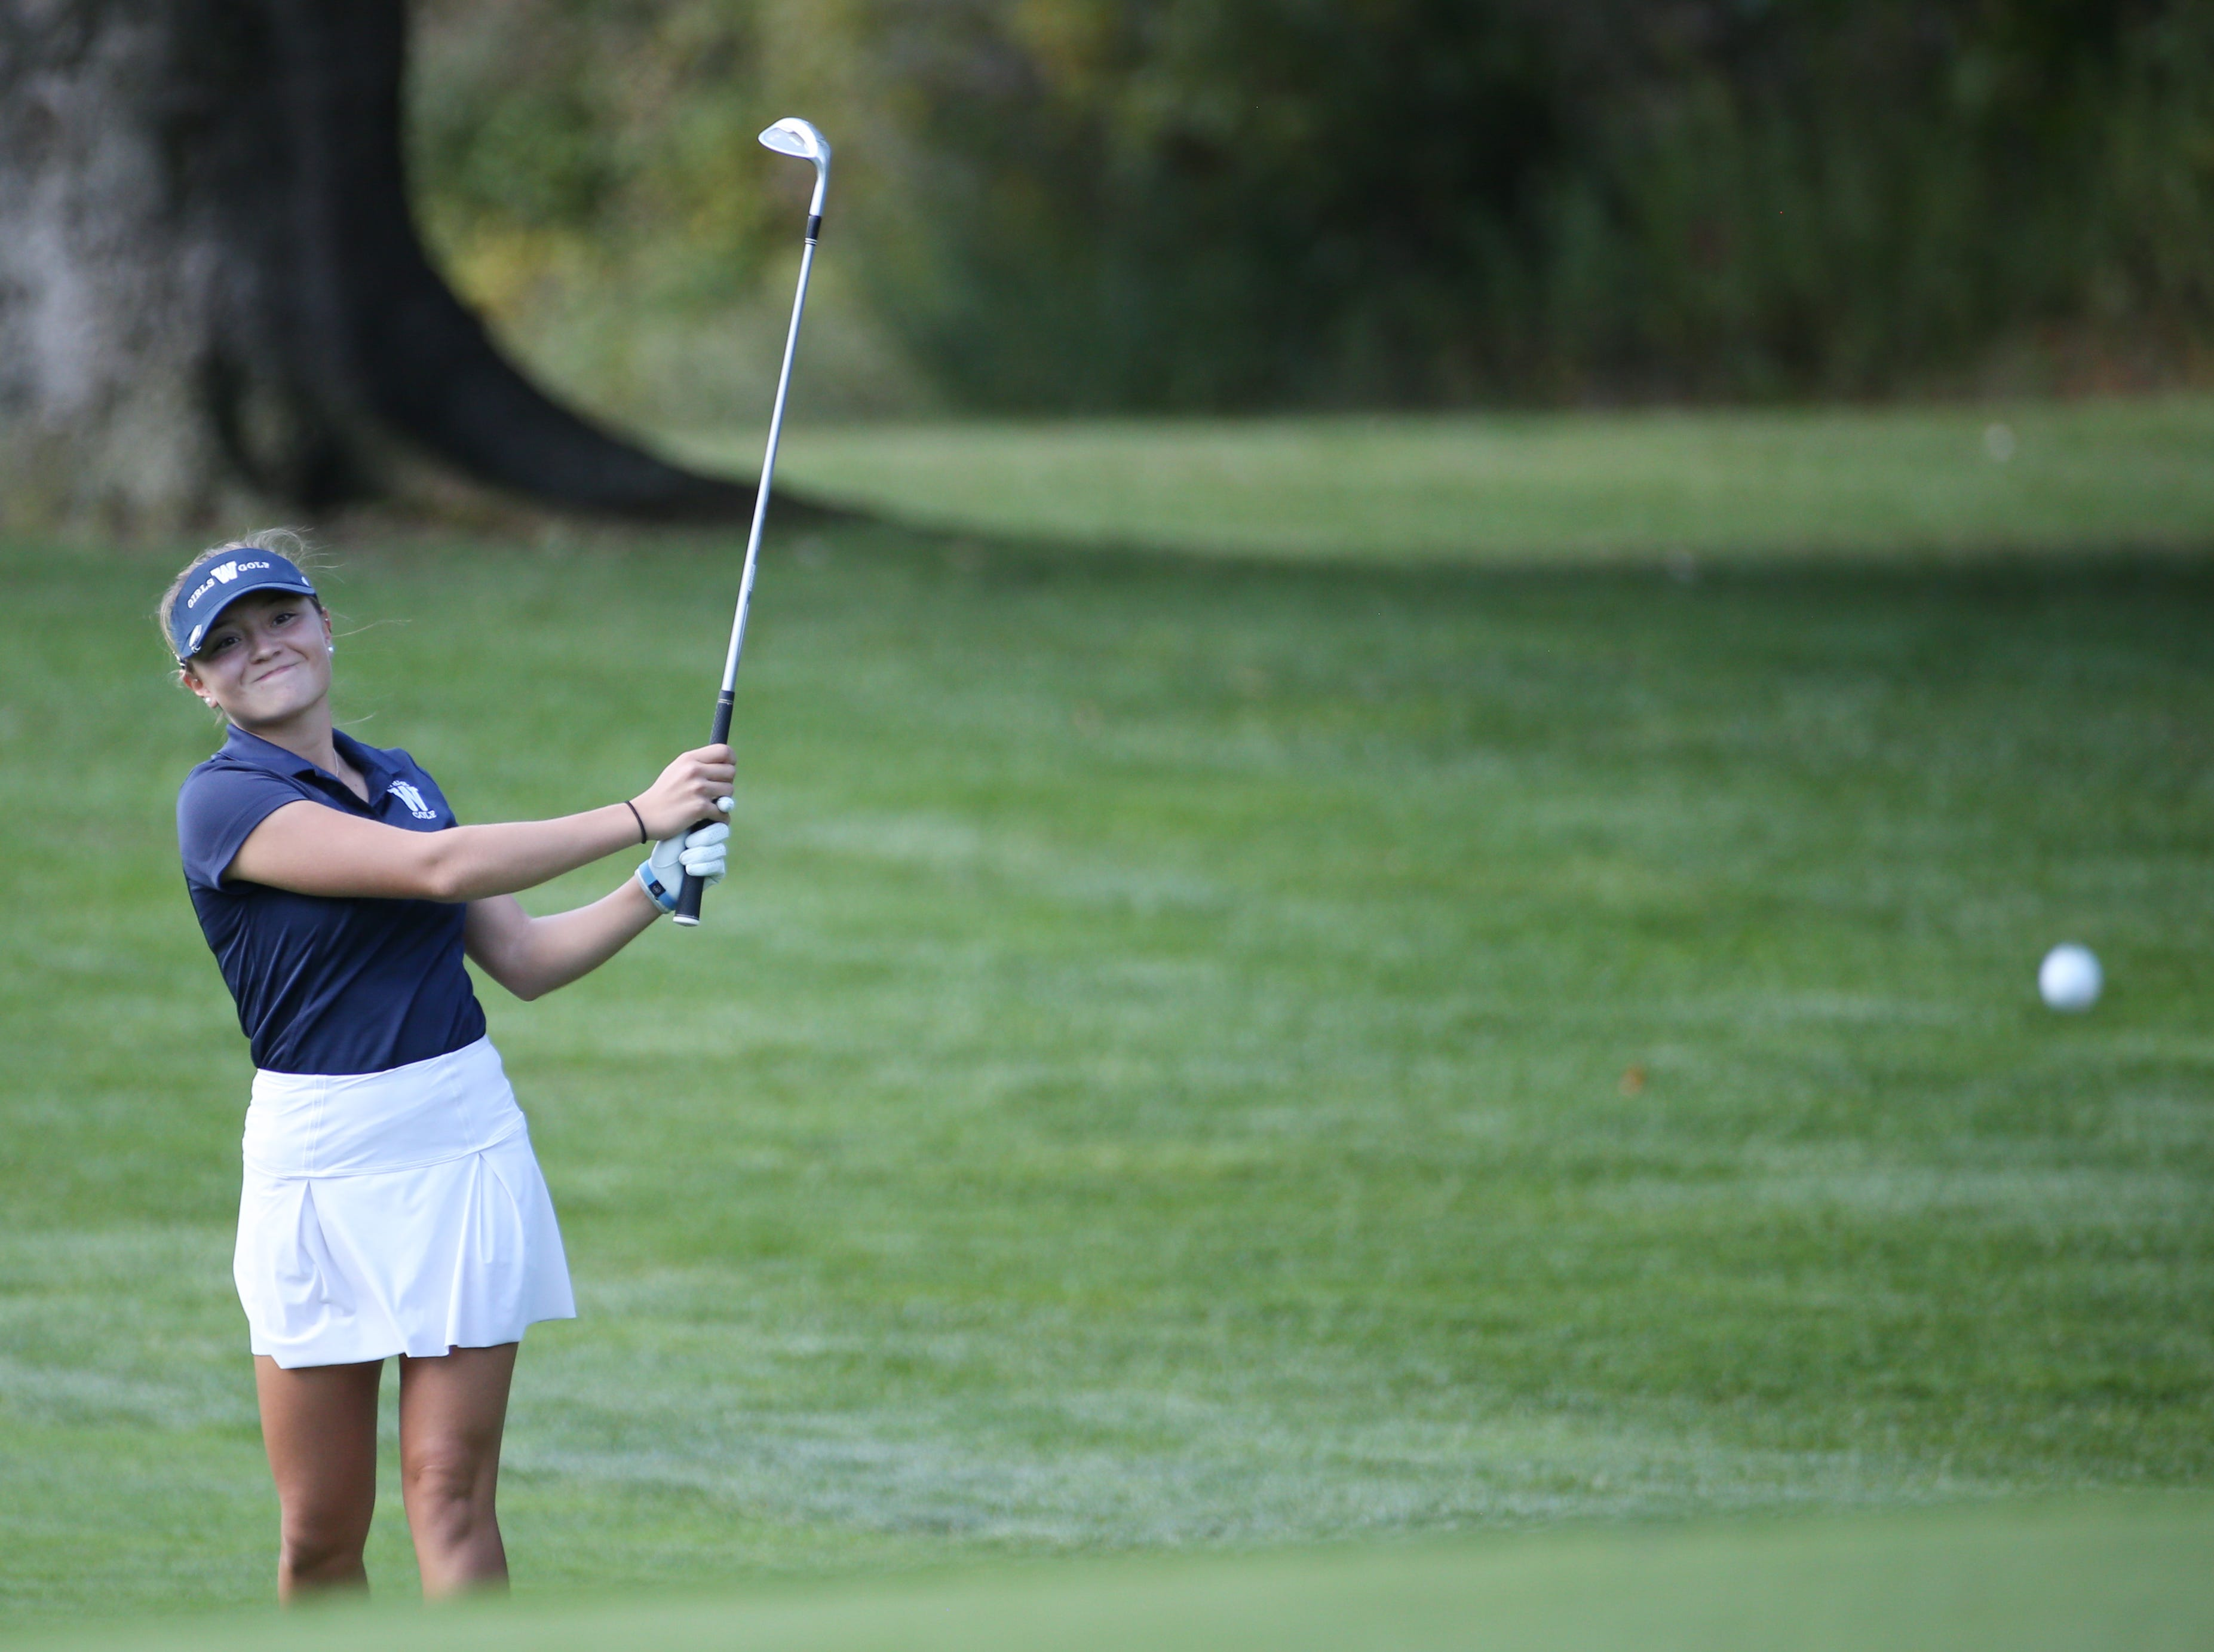 Mikah McDonnell chips onto 5 at the Section V girls golf championship at Deerfield Country Club.